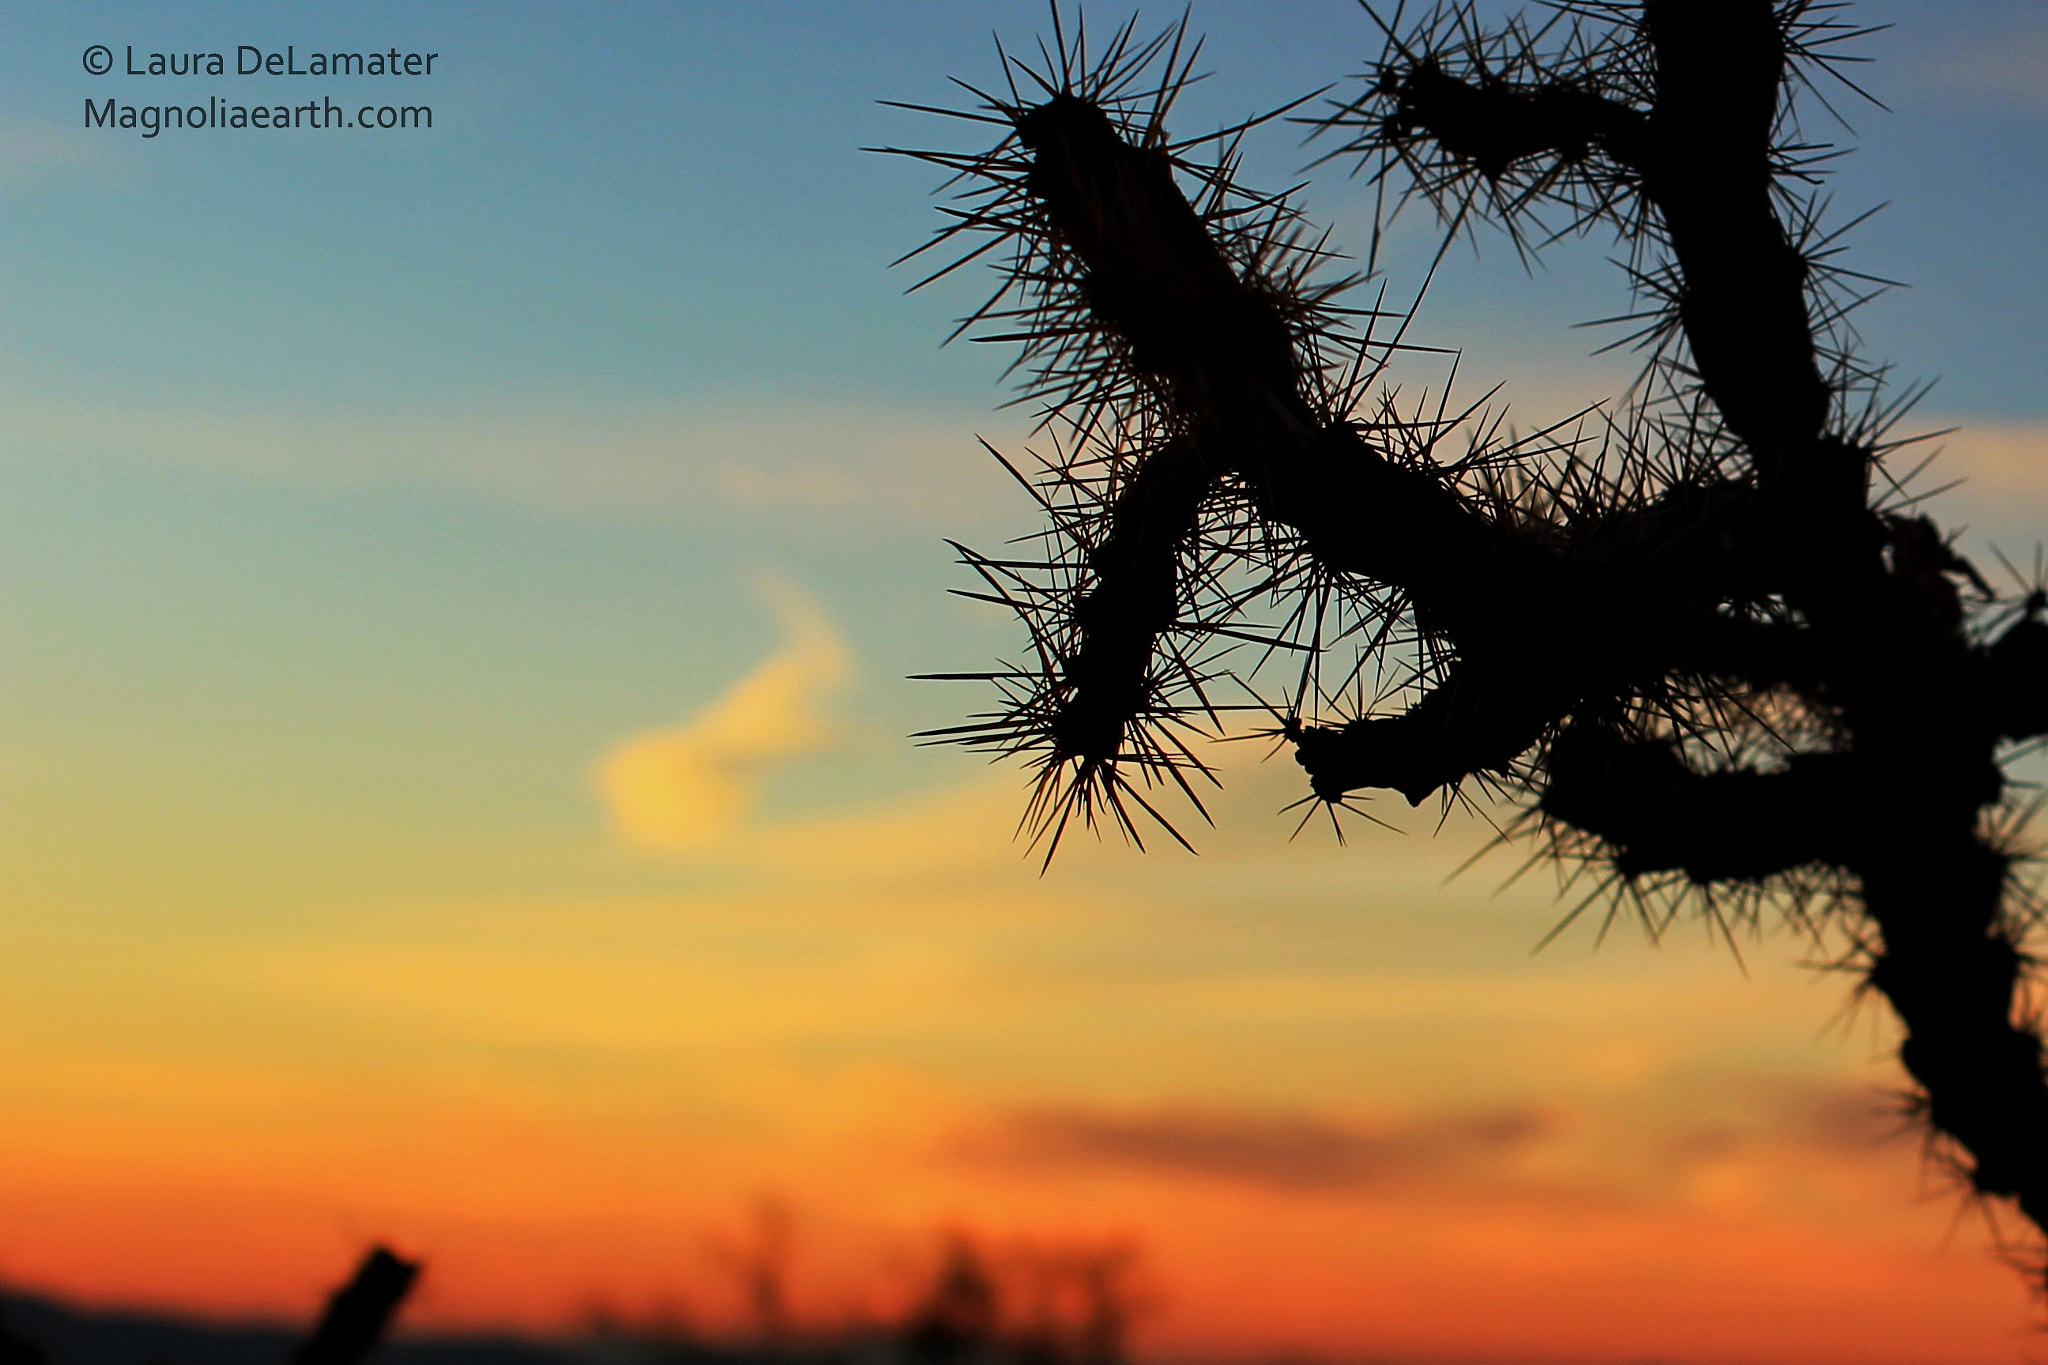 Photograph Cacti at Sunset by Laura DeLamater on 500px